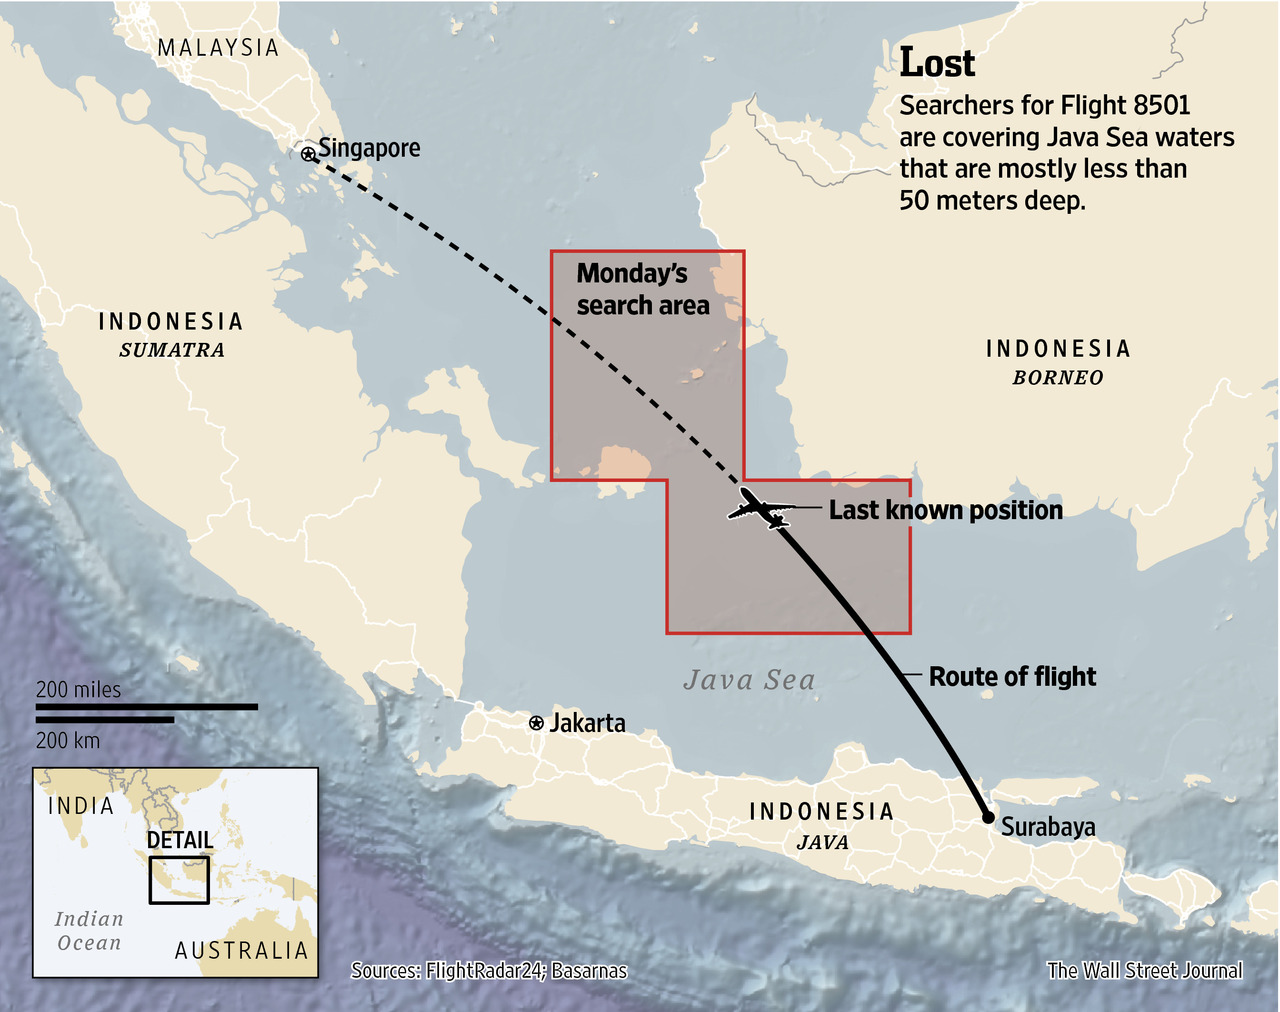 This graphic by the WSJ depicts the size of Monday's (29 December 2014) search area spanning the Java Sea tracking the actual flight path and the projected flight path of the airliner